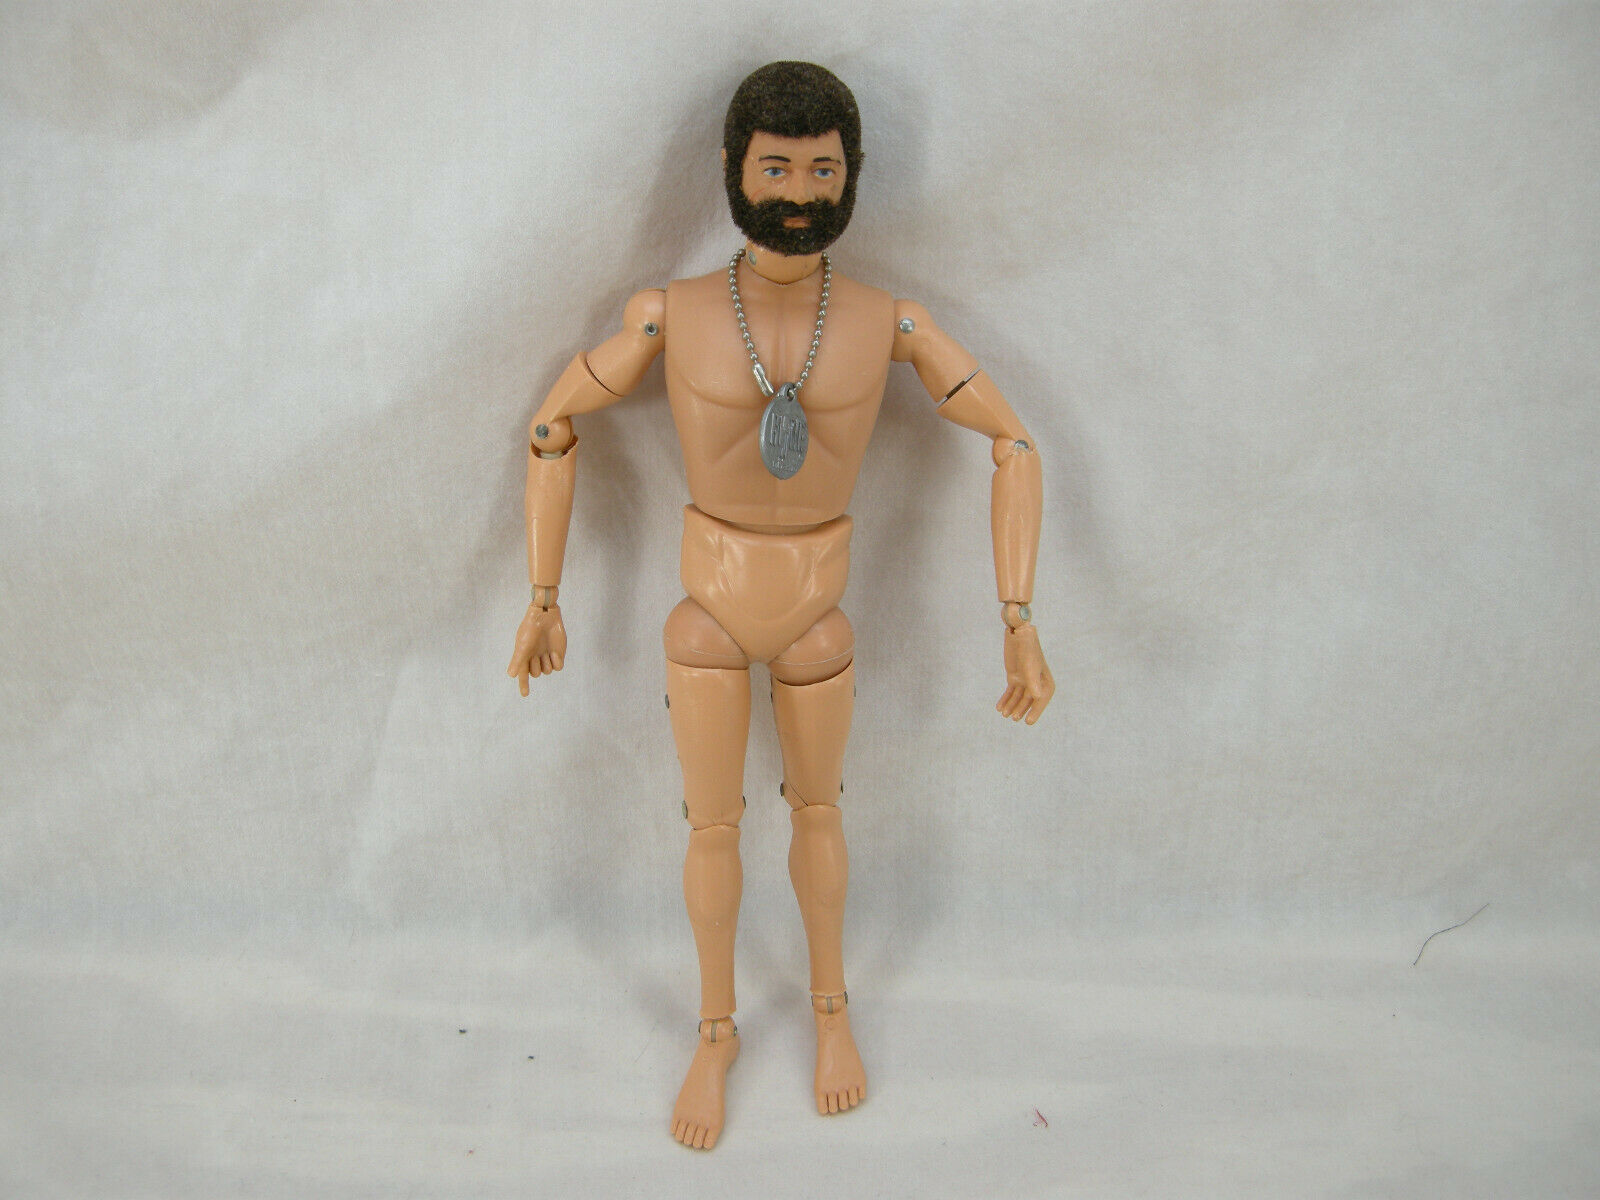 1970'S VINTAGE 12  GI JOE ADVENTURE TEAM LAND ADVENTURER FIGURE NUDE BODY DOGTAG